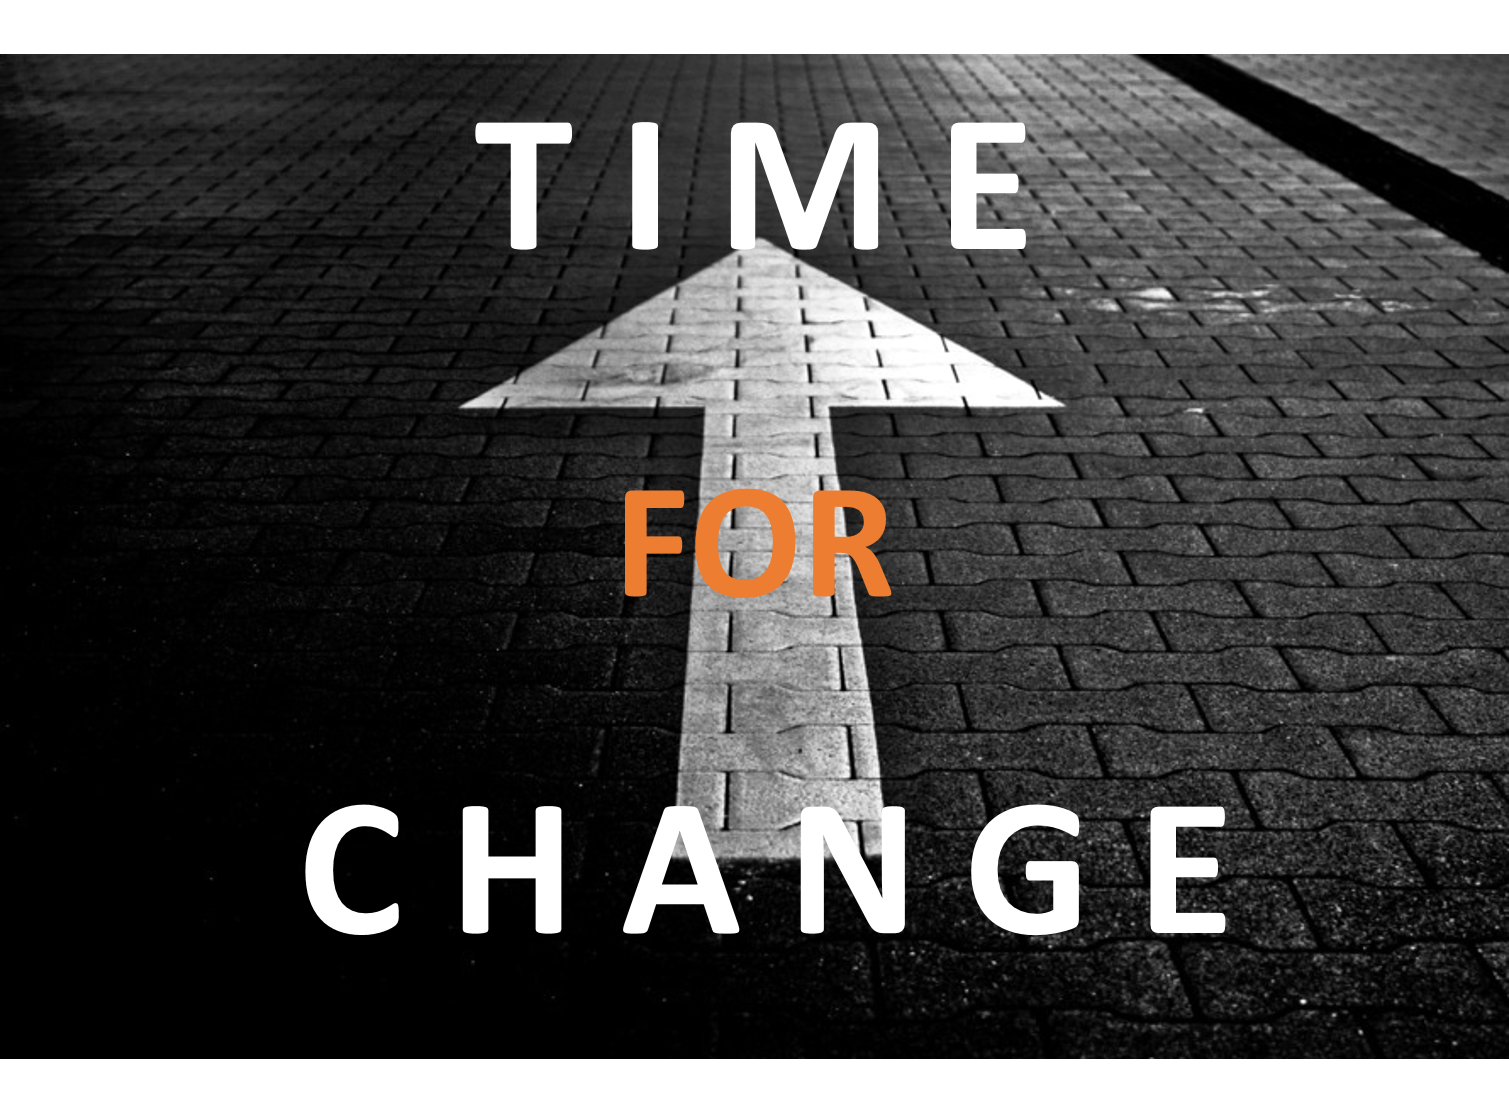 TIME FOR CHANGE MANAGEMENT